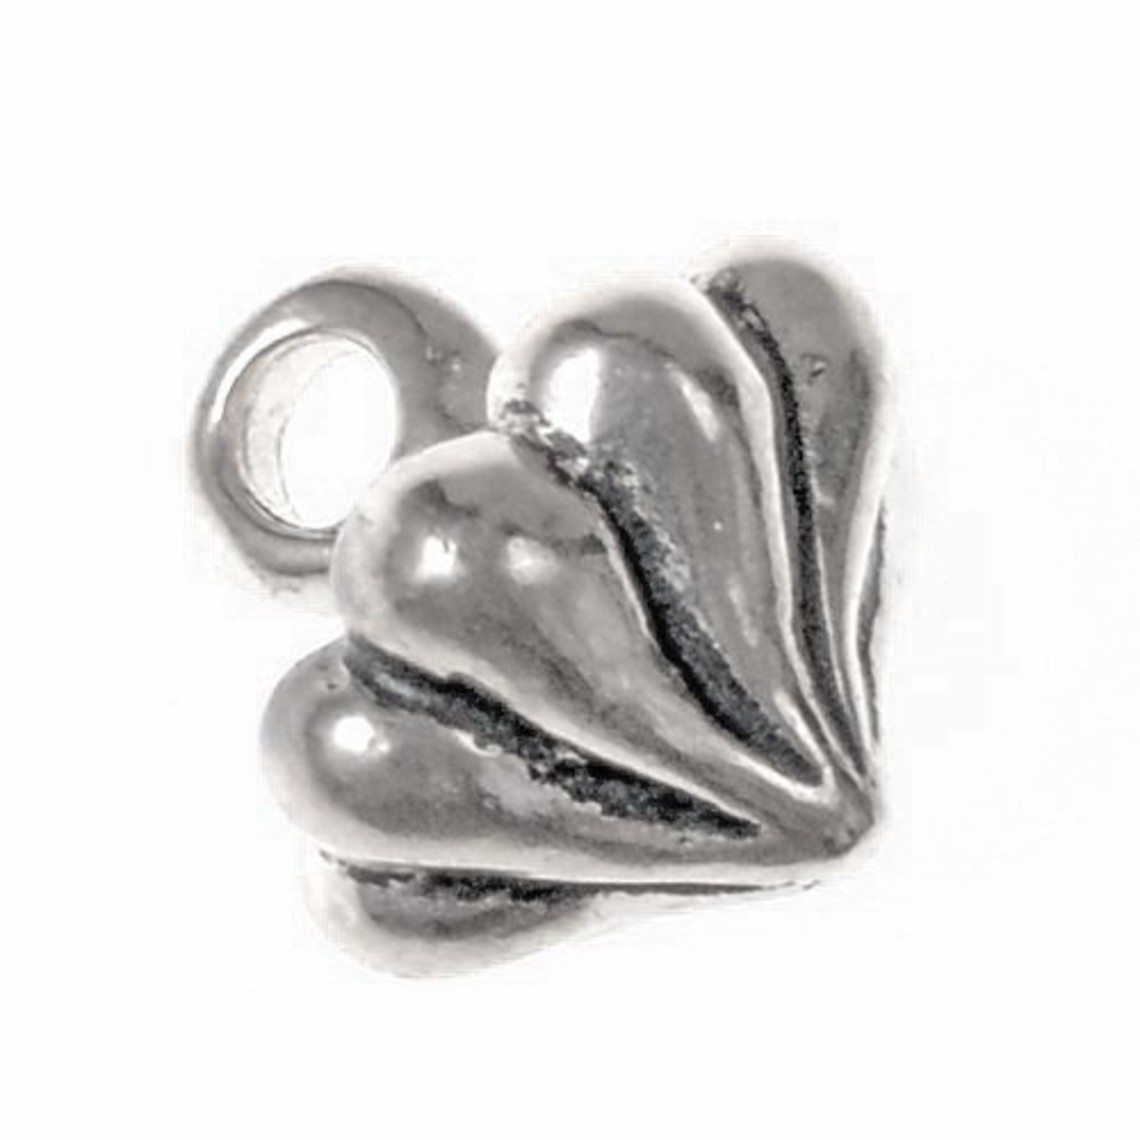 13th-15th century buttons, set of 5 pieces, pewter